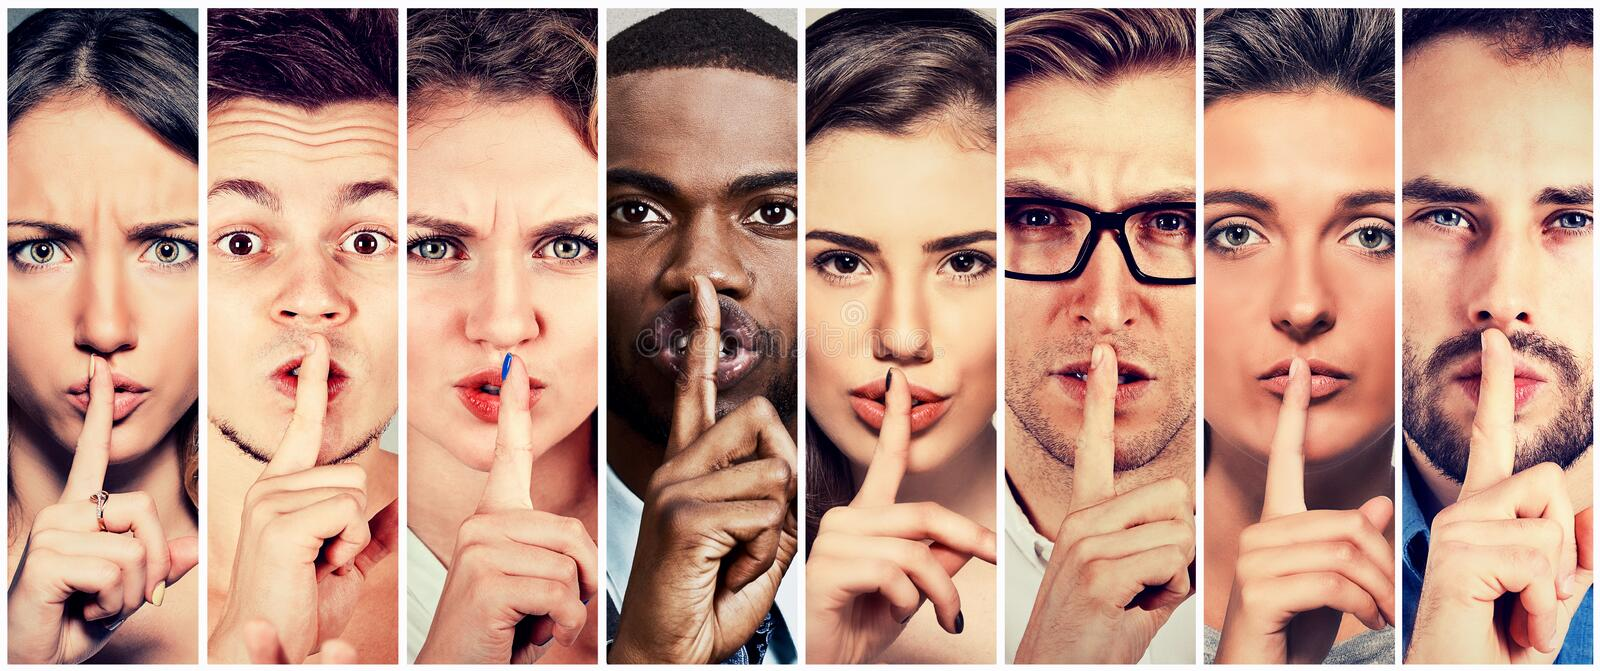 Group of people men women with finger on lips gesture royalty free stock photography